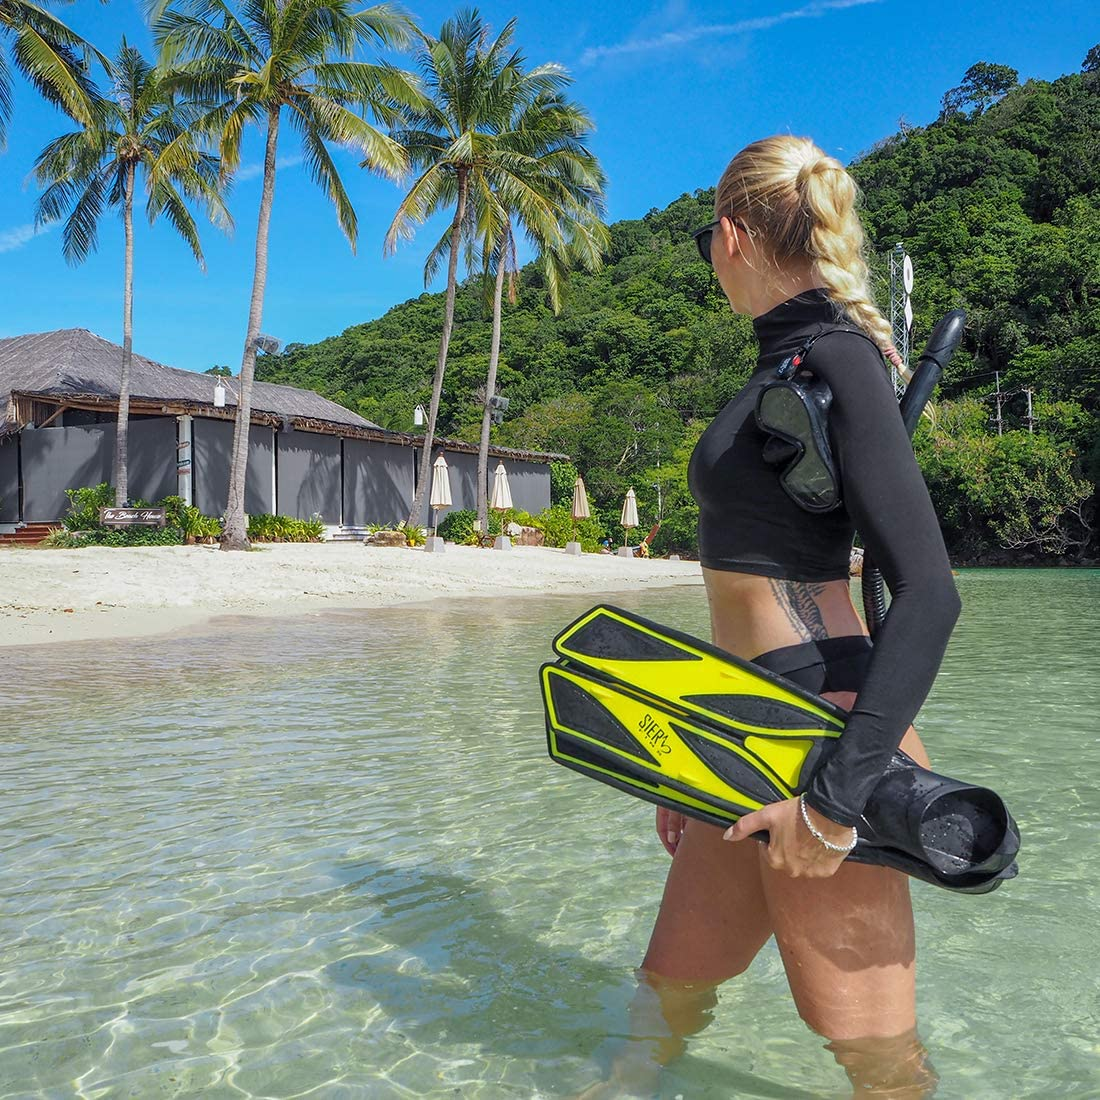 Soft Silicone Full-Foot with Efficient Thrust Swim Fins Secured Tight Fitting Fins Without Any Weak Back Straps SIER FINS